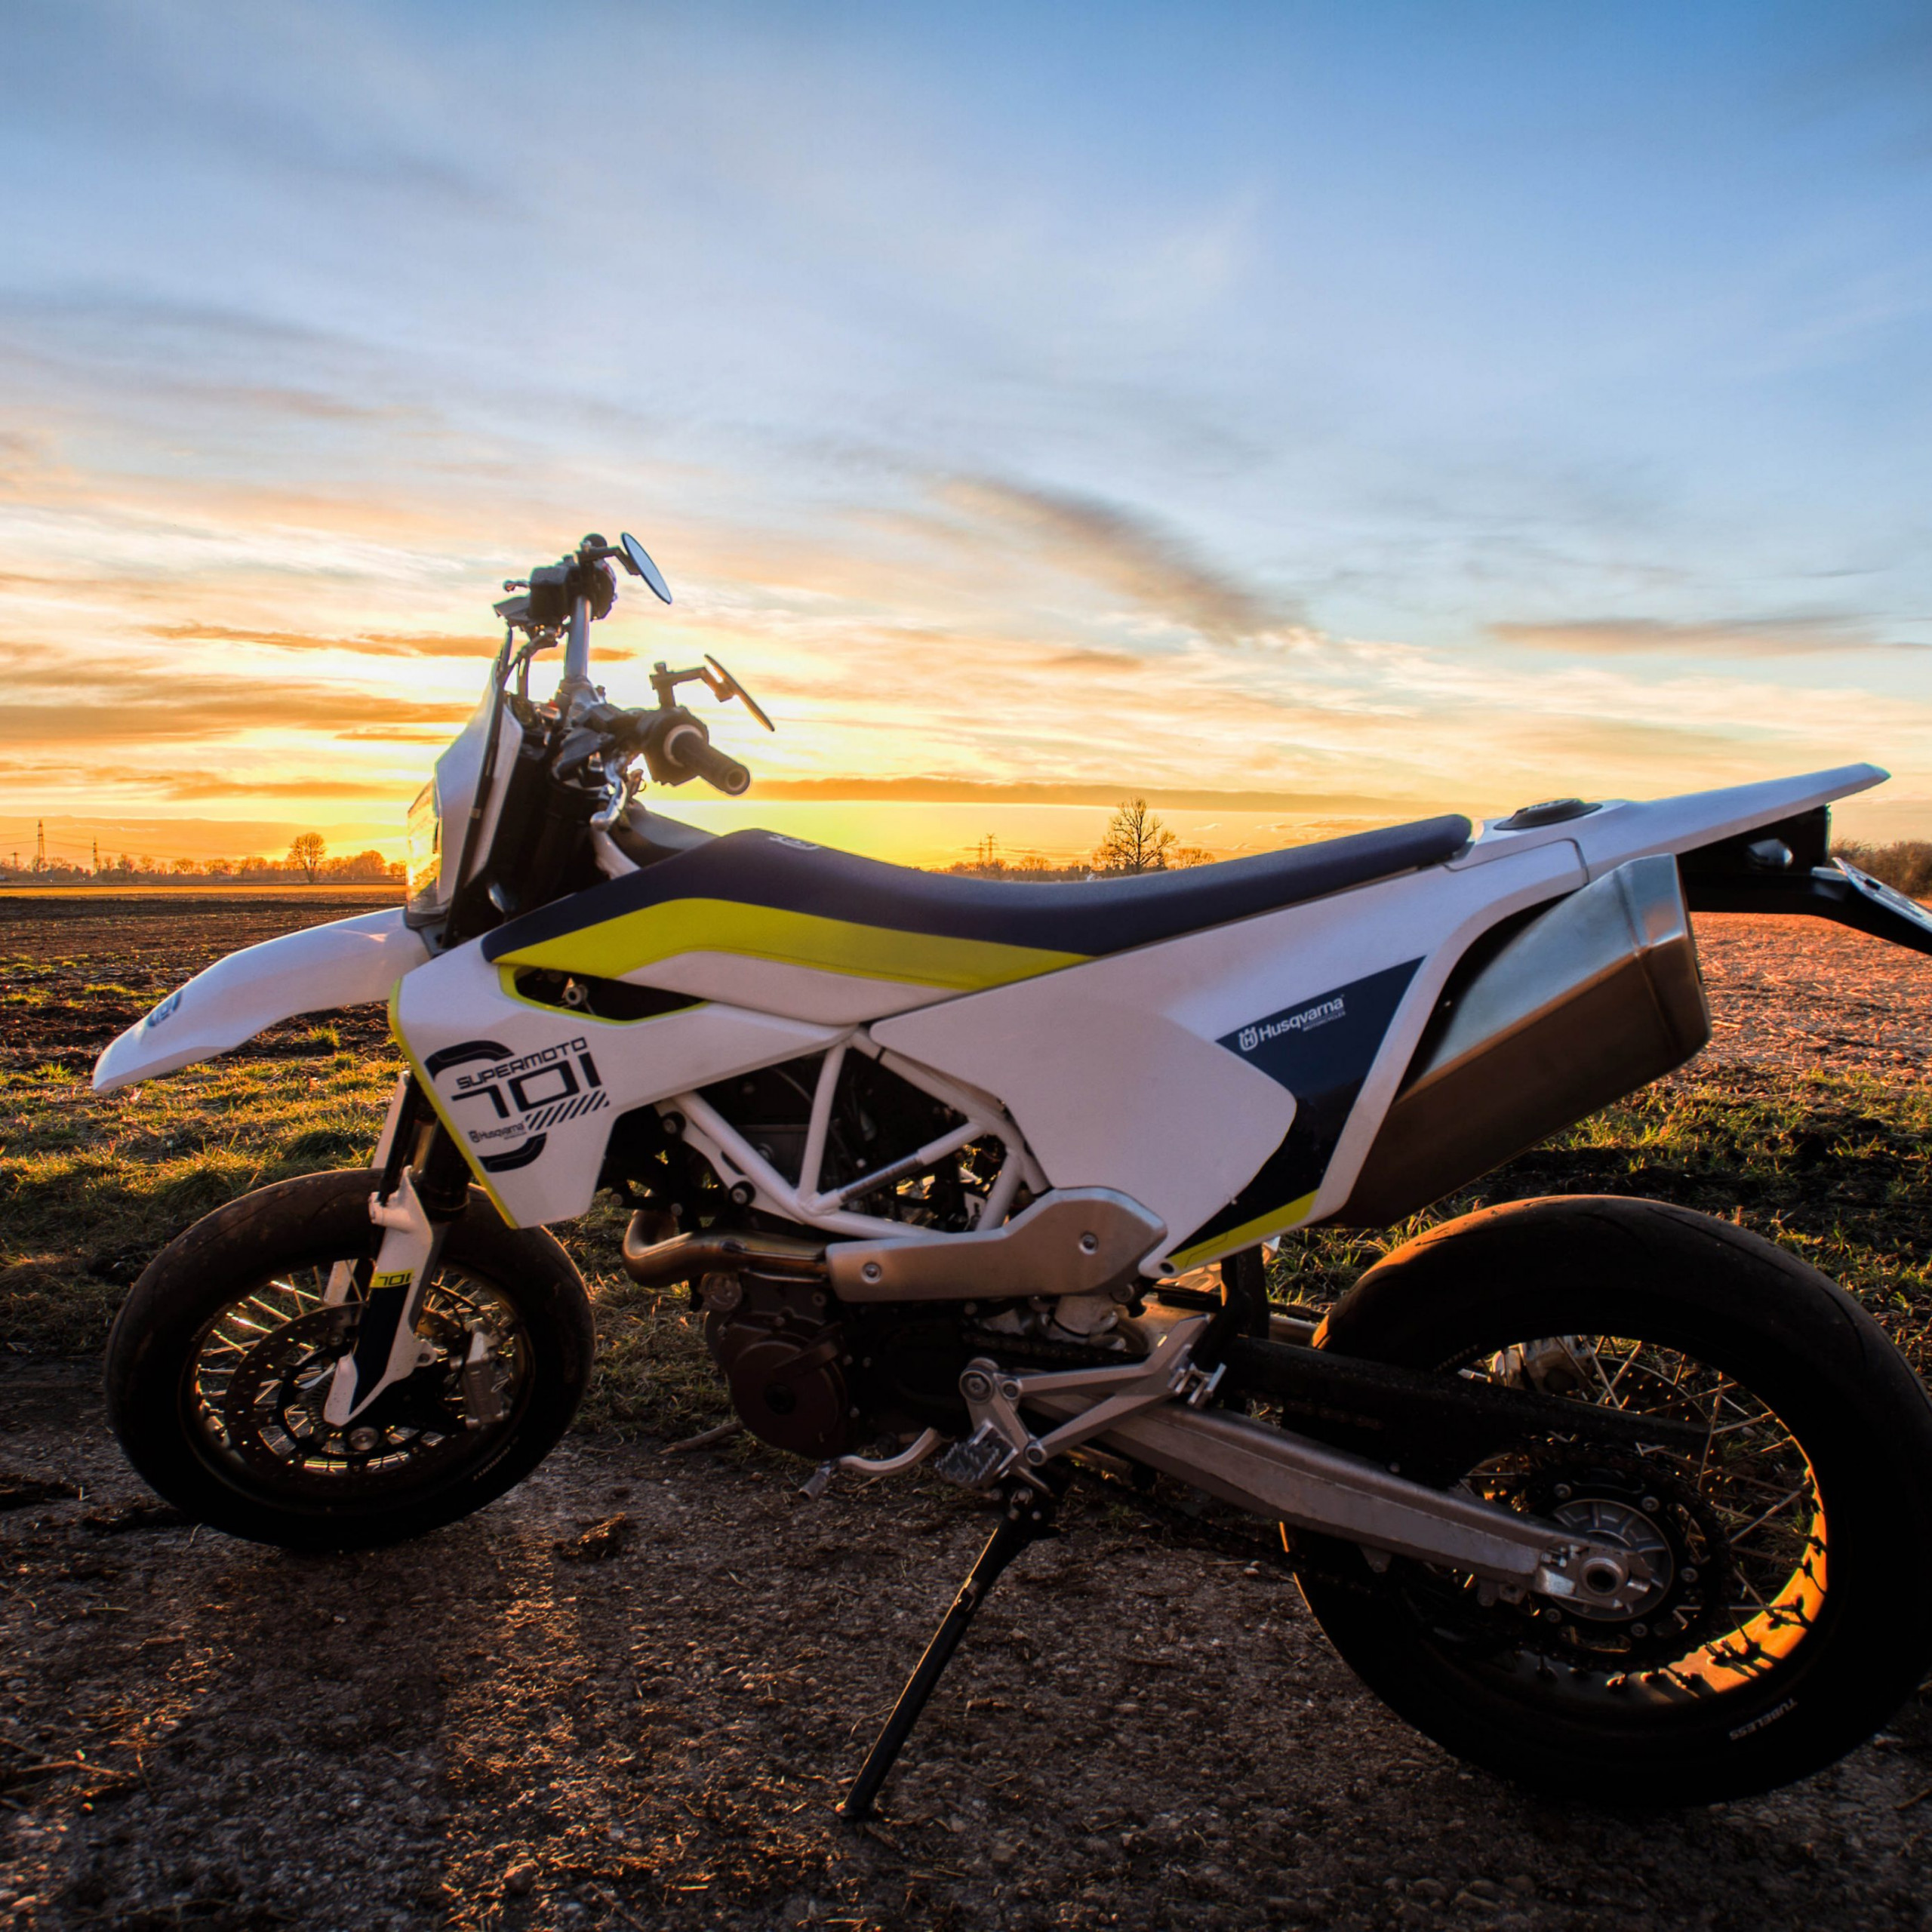 bike motorcycle sunset orange blue sky 4k wallpaper